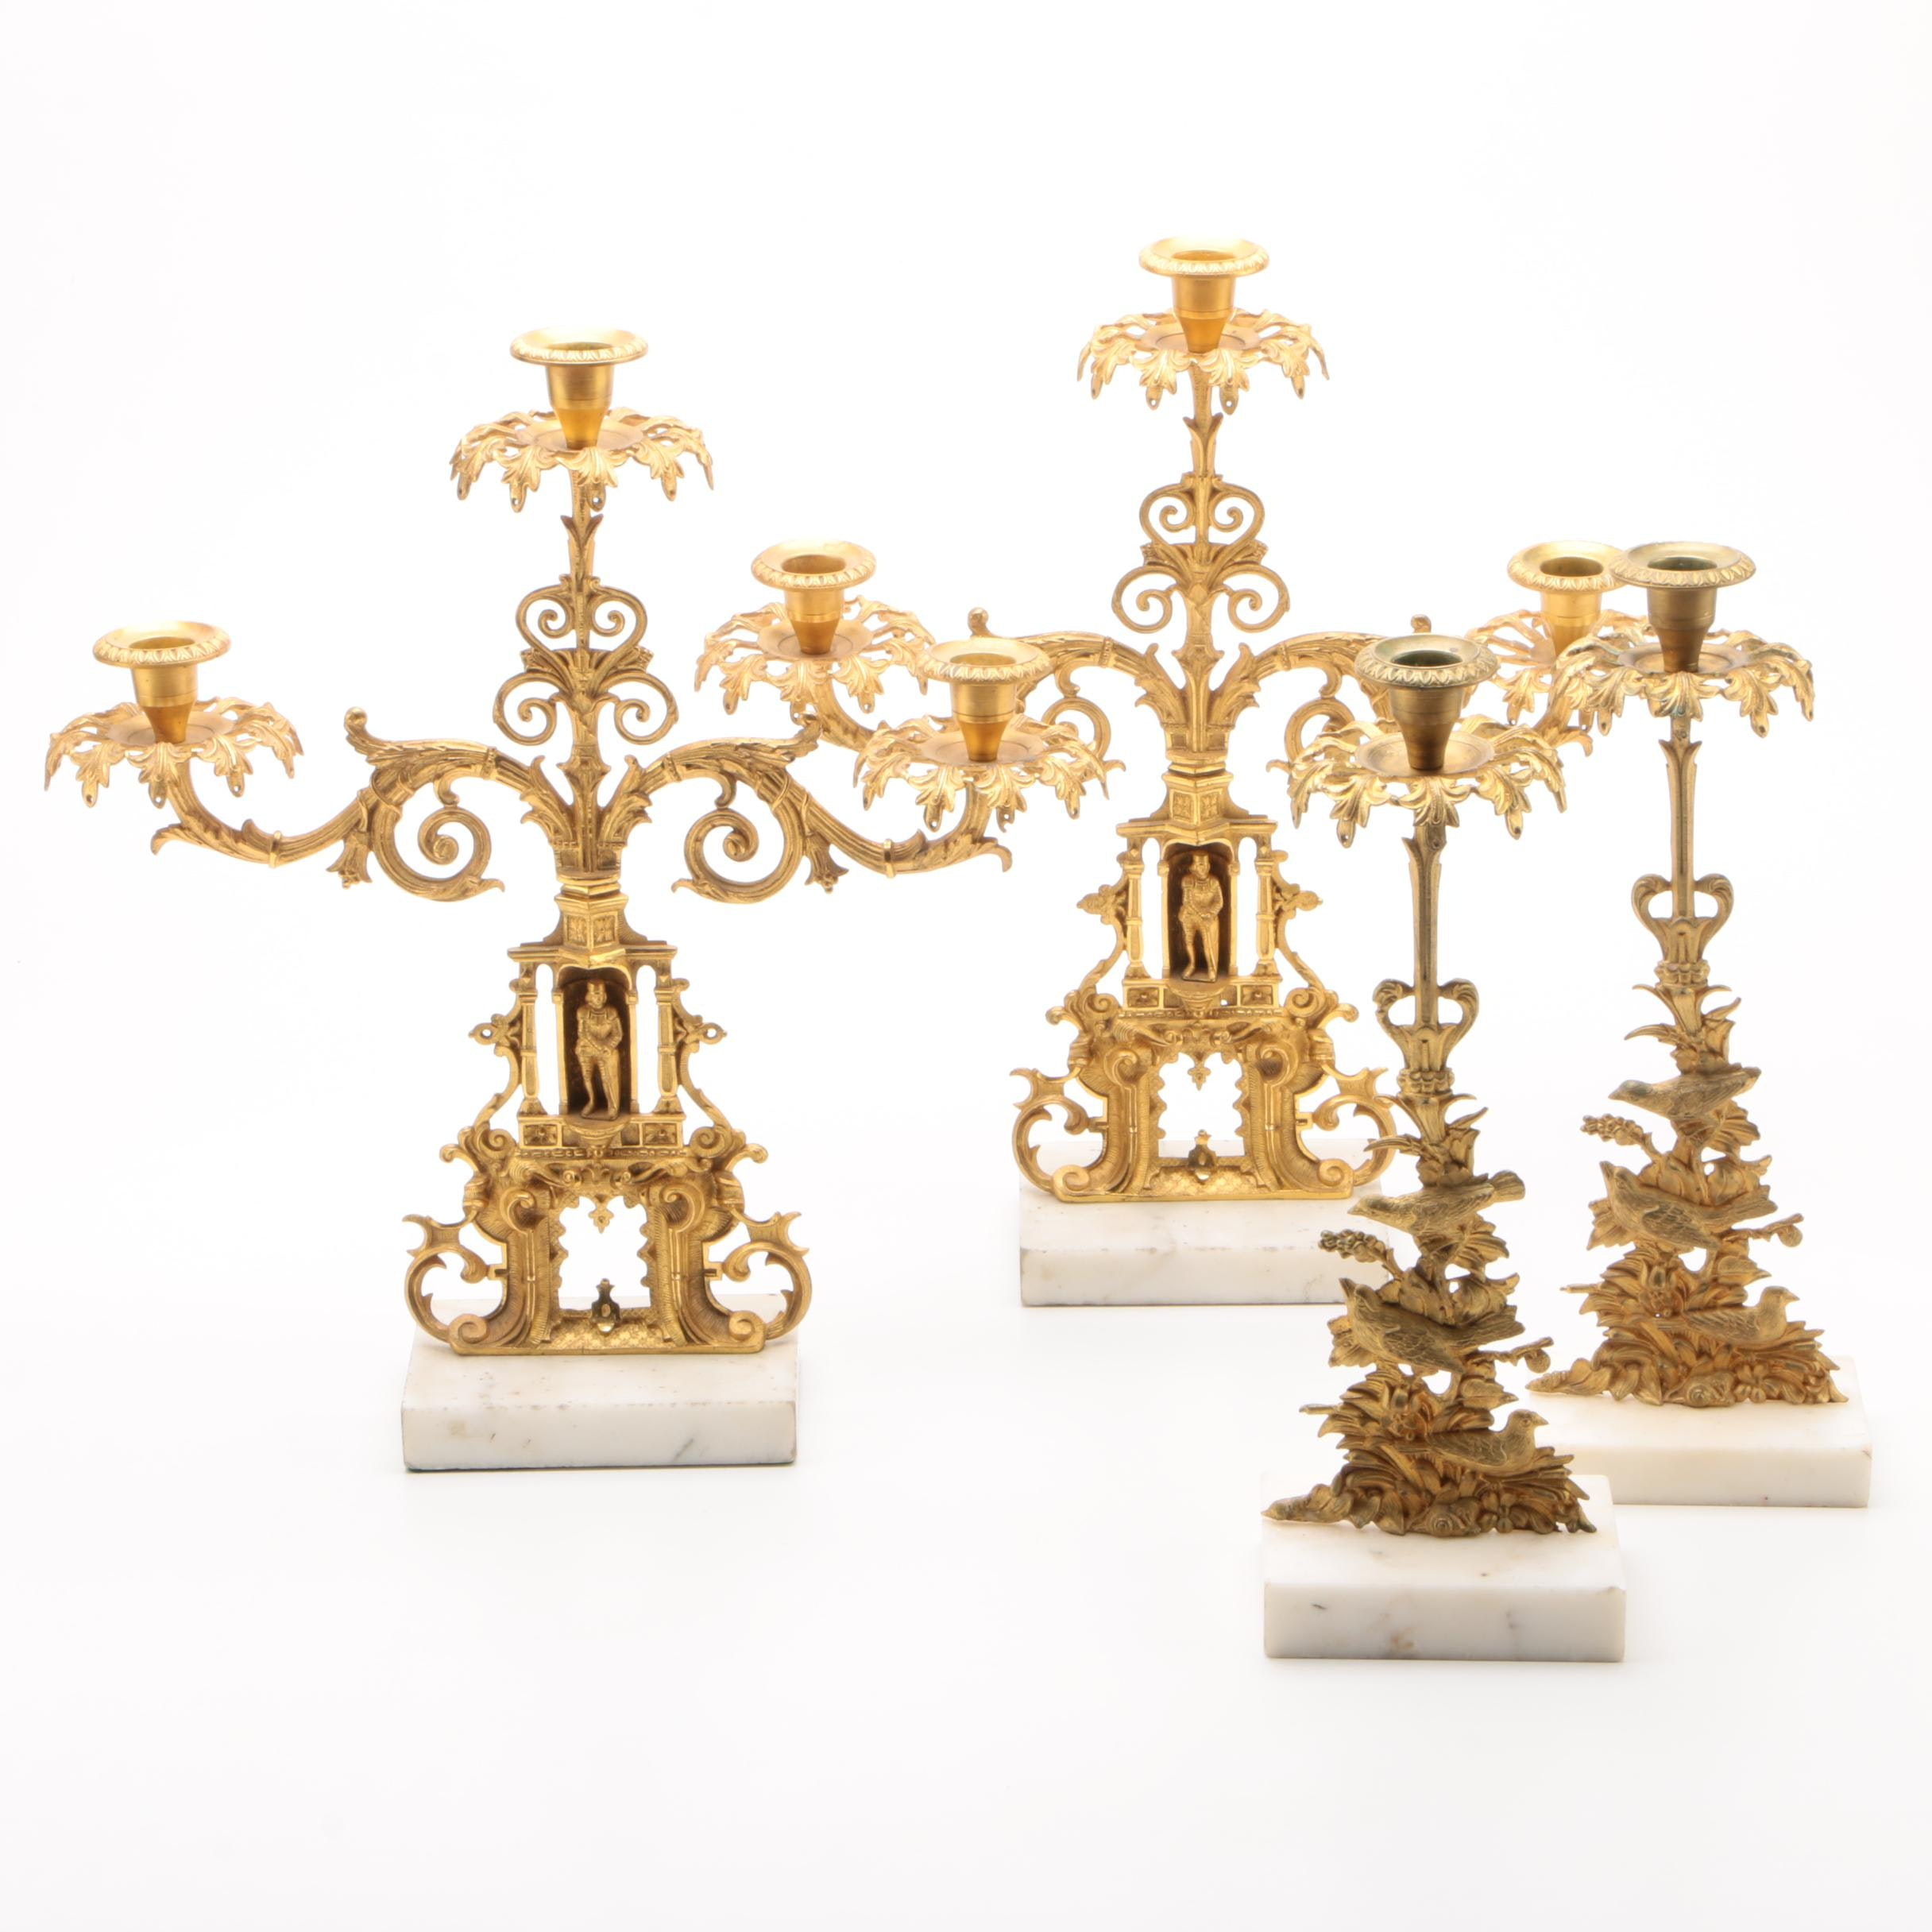 Four Piece Girondole Suite in Gilt Finish with Figural Knights, 19th Century